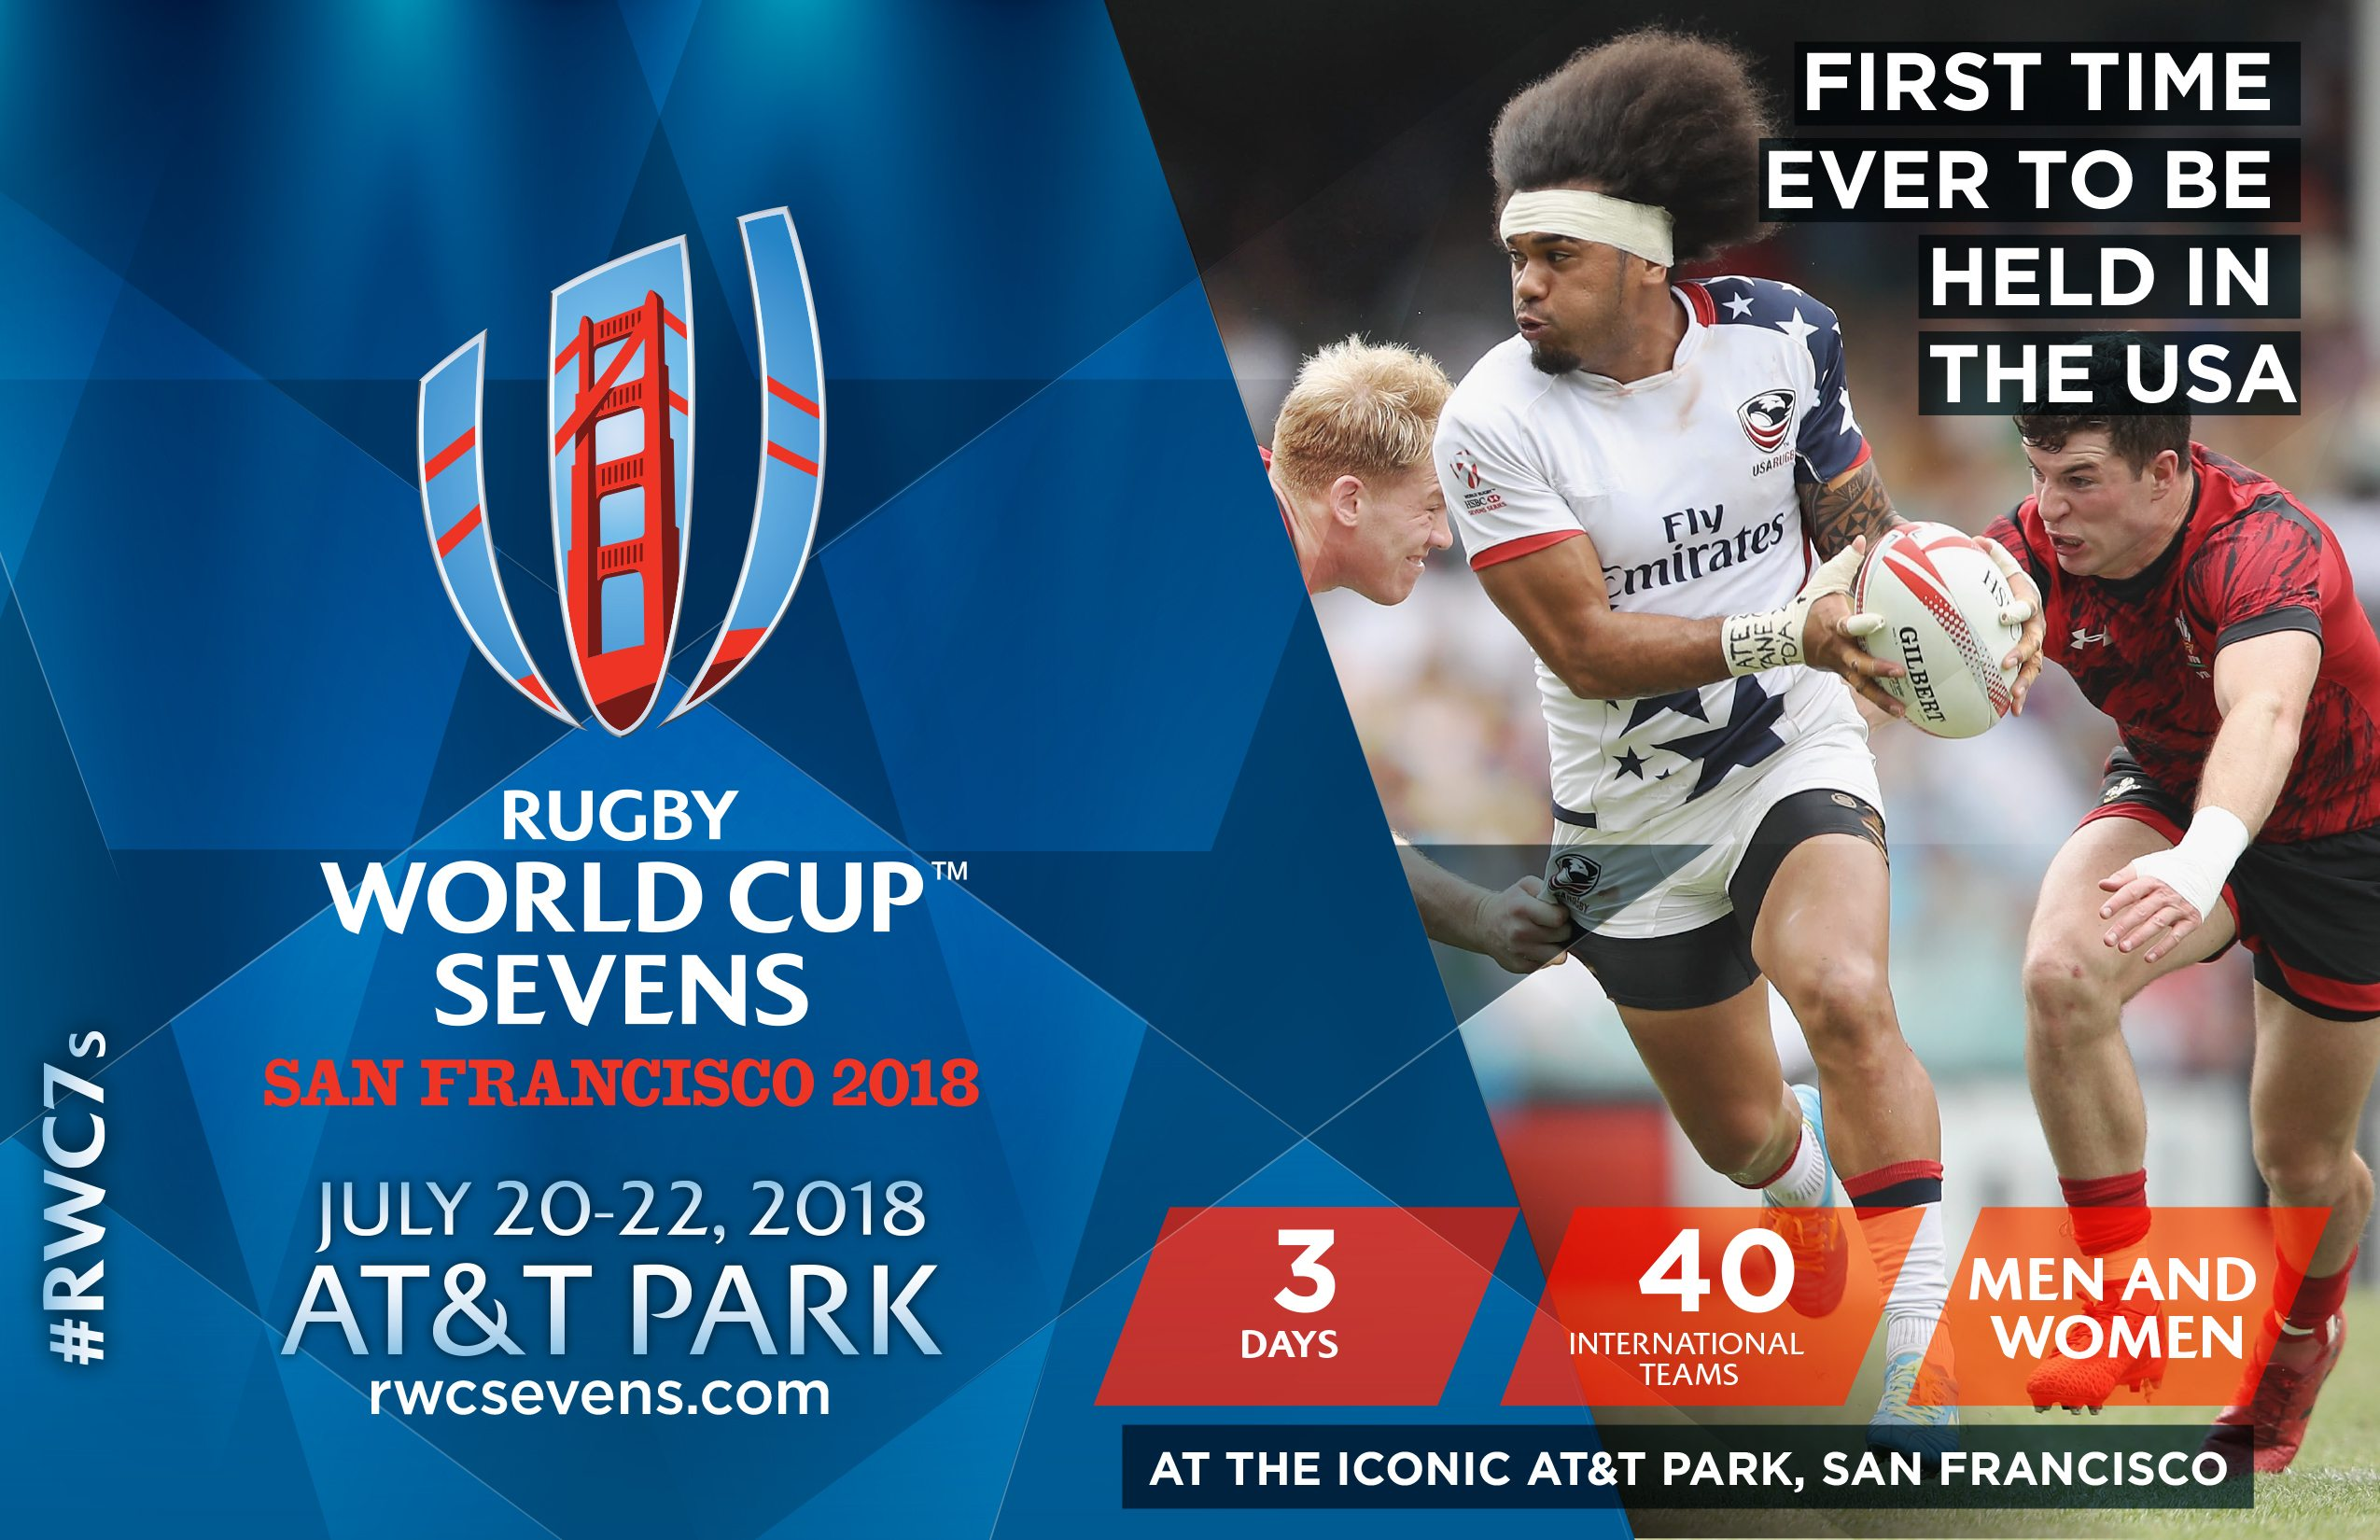 Rugby World Cup Sevens 2018 Dates